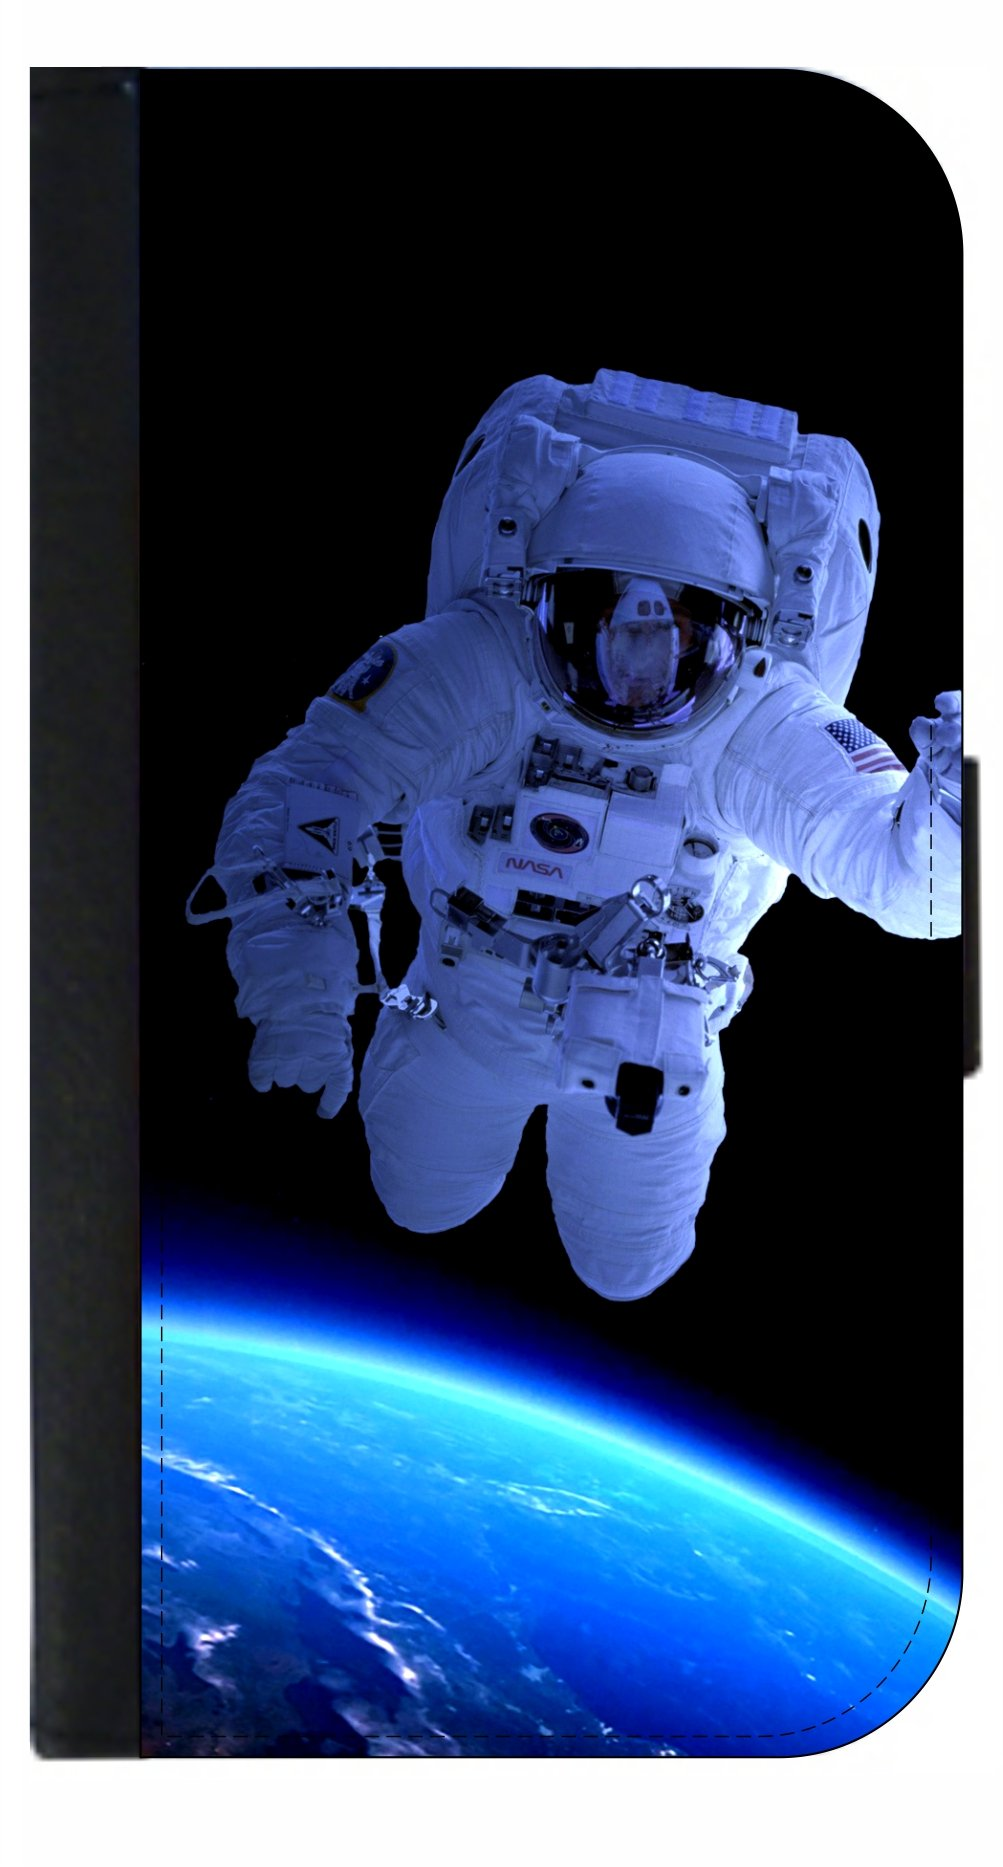 Astronaut In Space - Passport Cover / Card Holder for Travel